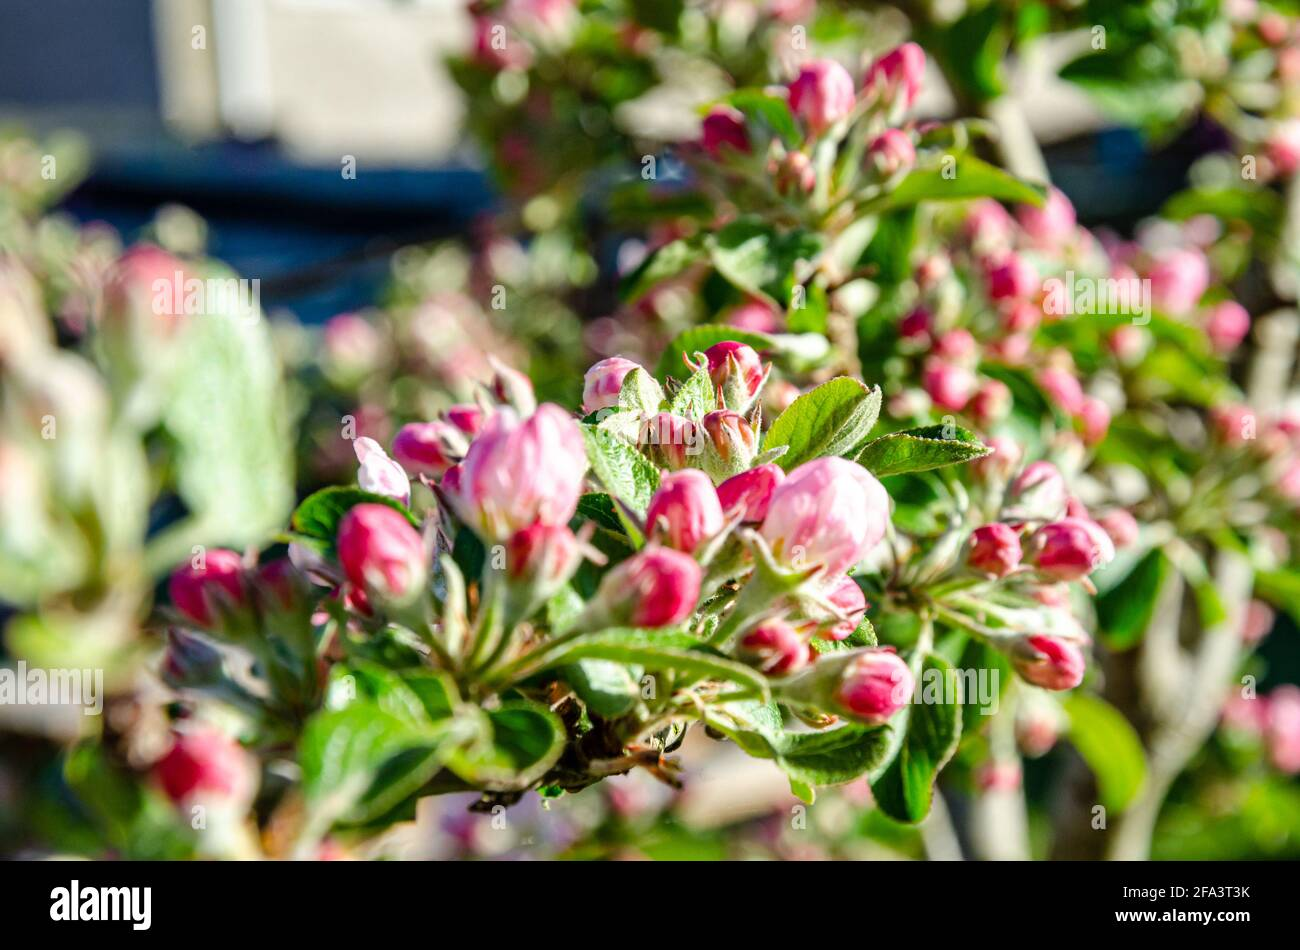 apple-blossom-and-flower-buds-on-an-apple-tree-in-a-residential-garden-2FA3T3K.jpg